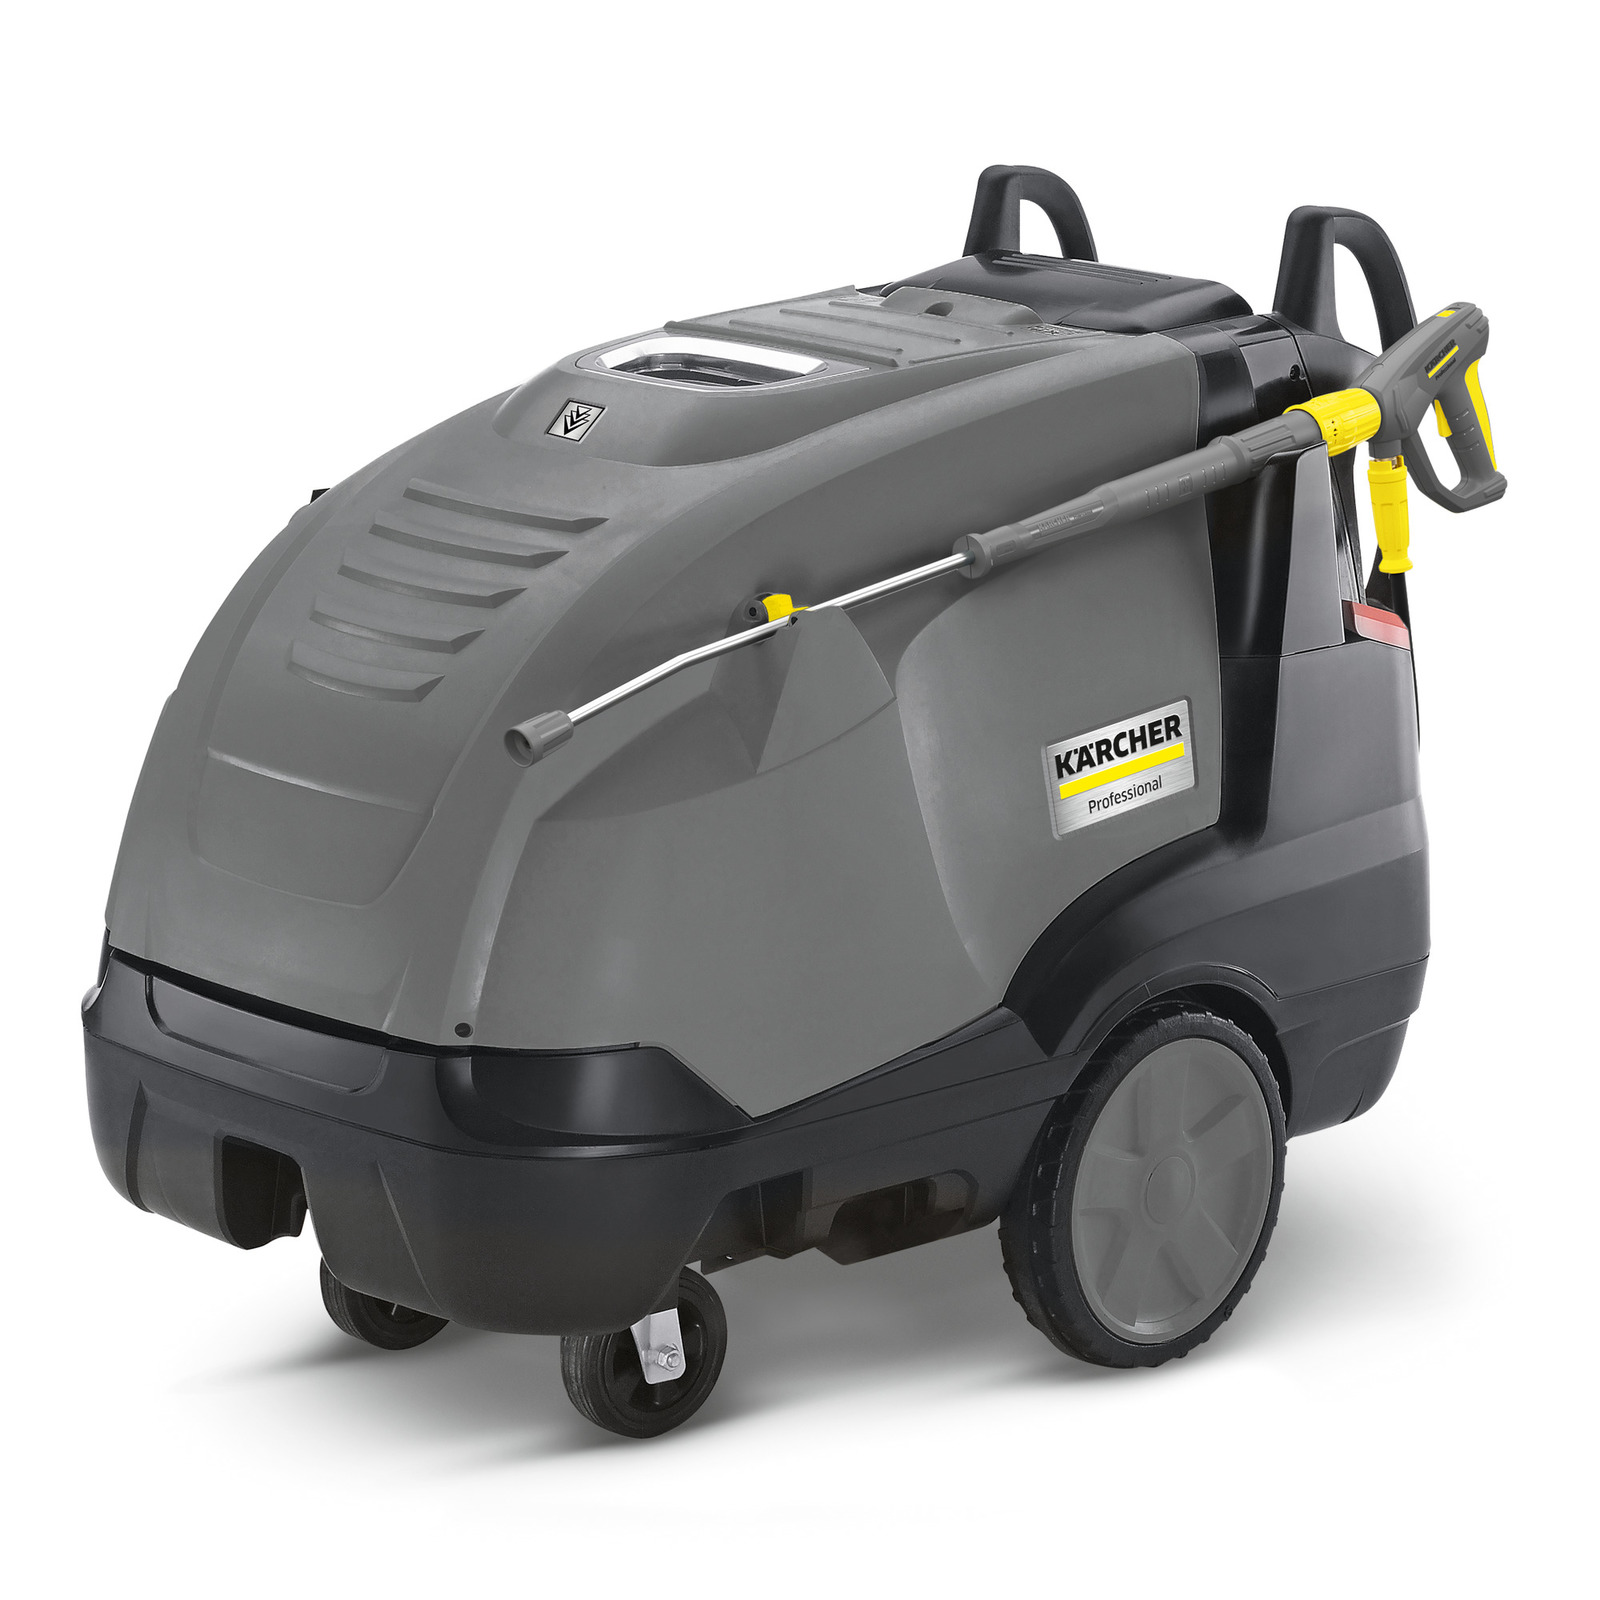 Karcher Hds 750 Service Manual | Wiring Library